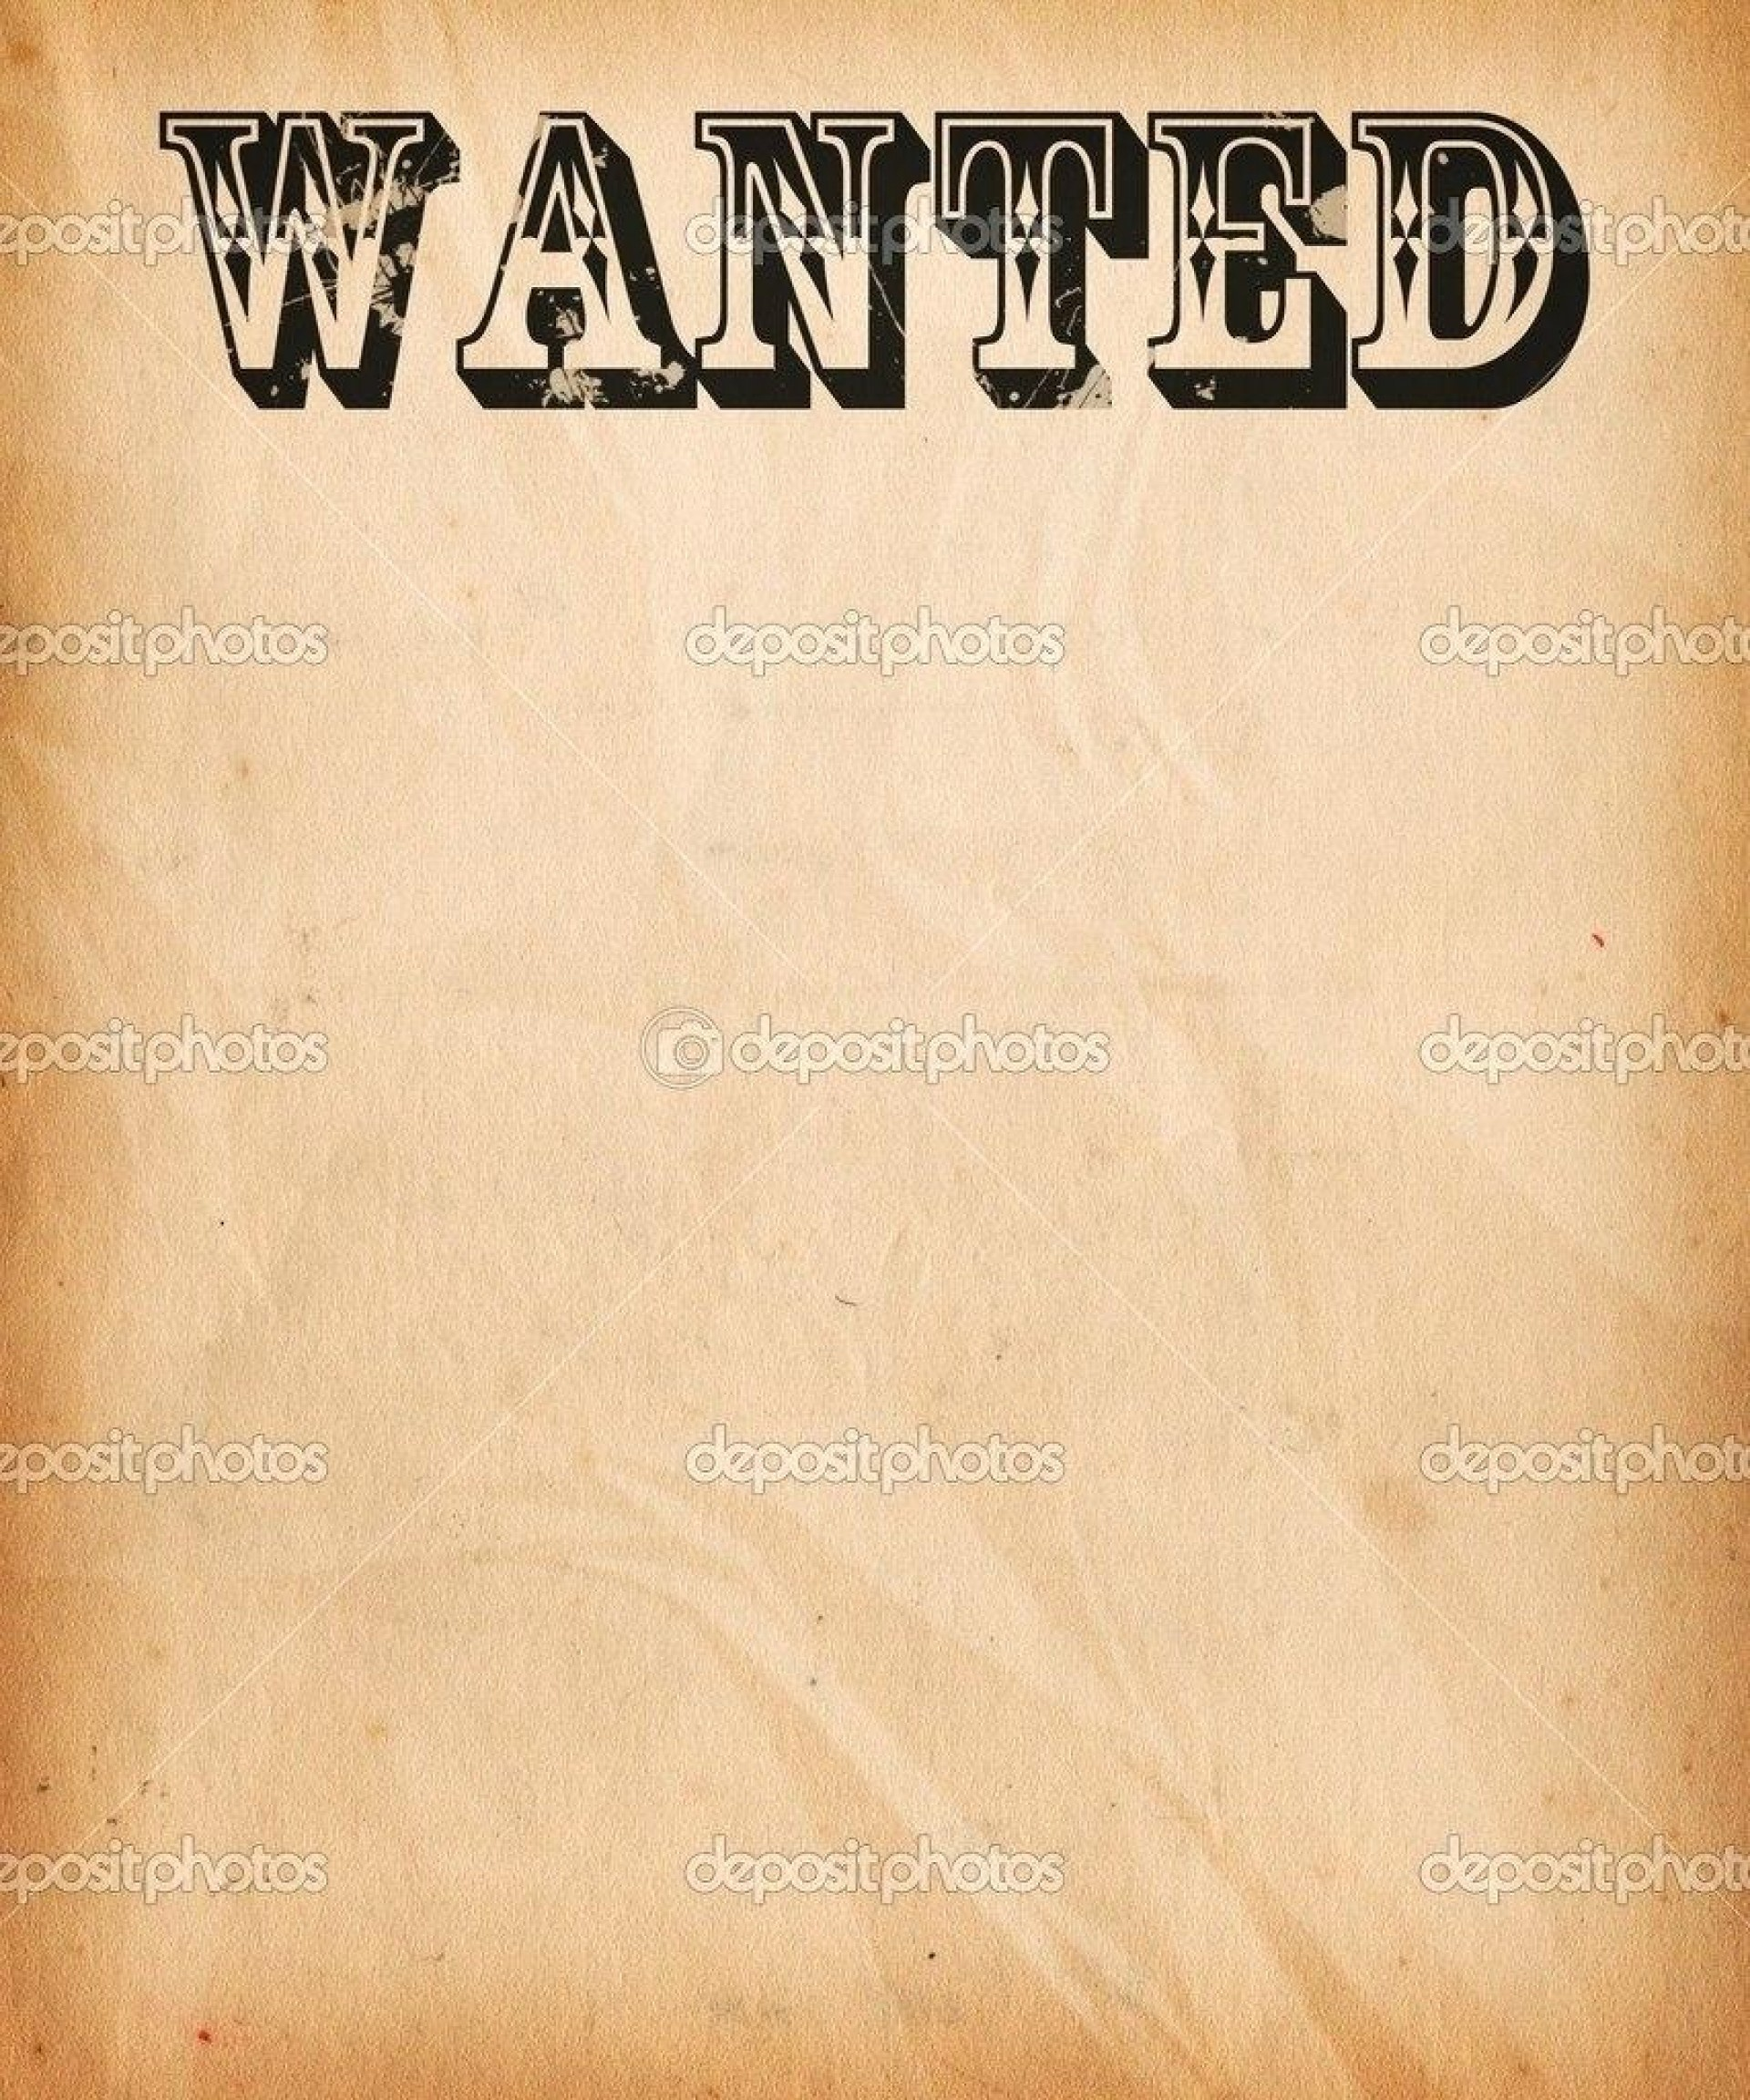 008 Template Ideas Free Wanted Poster Printable Impressive - Wanted Poster Printable Free